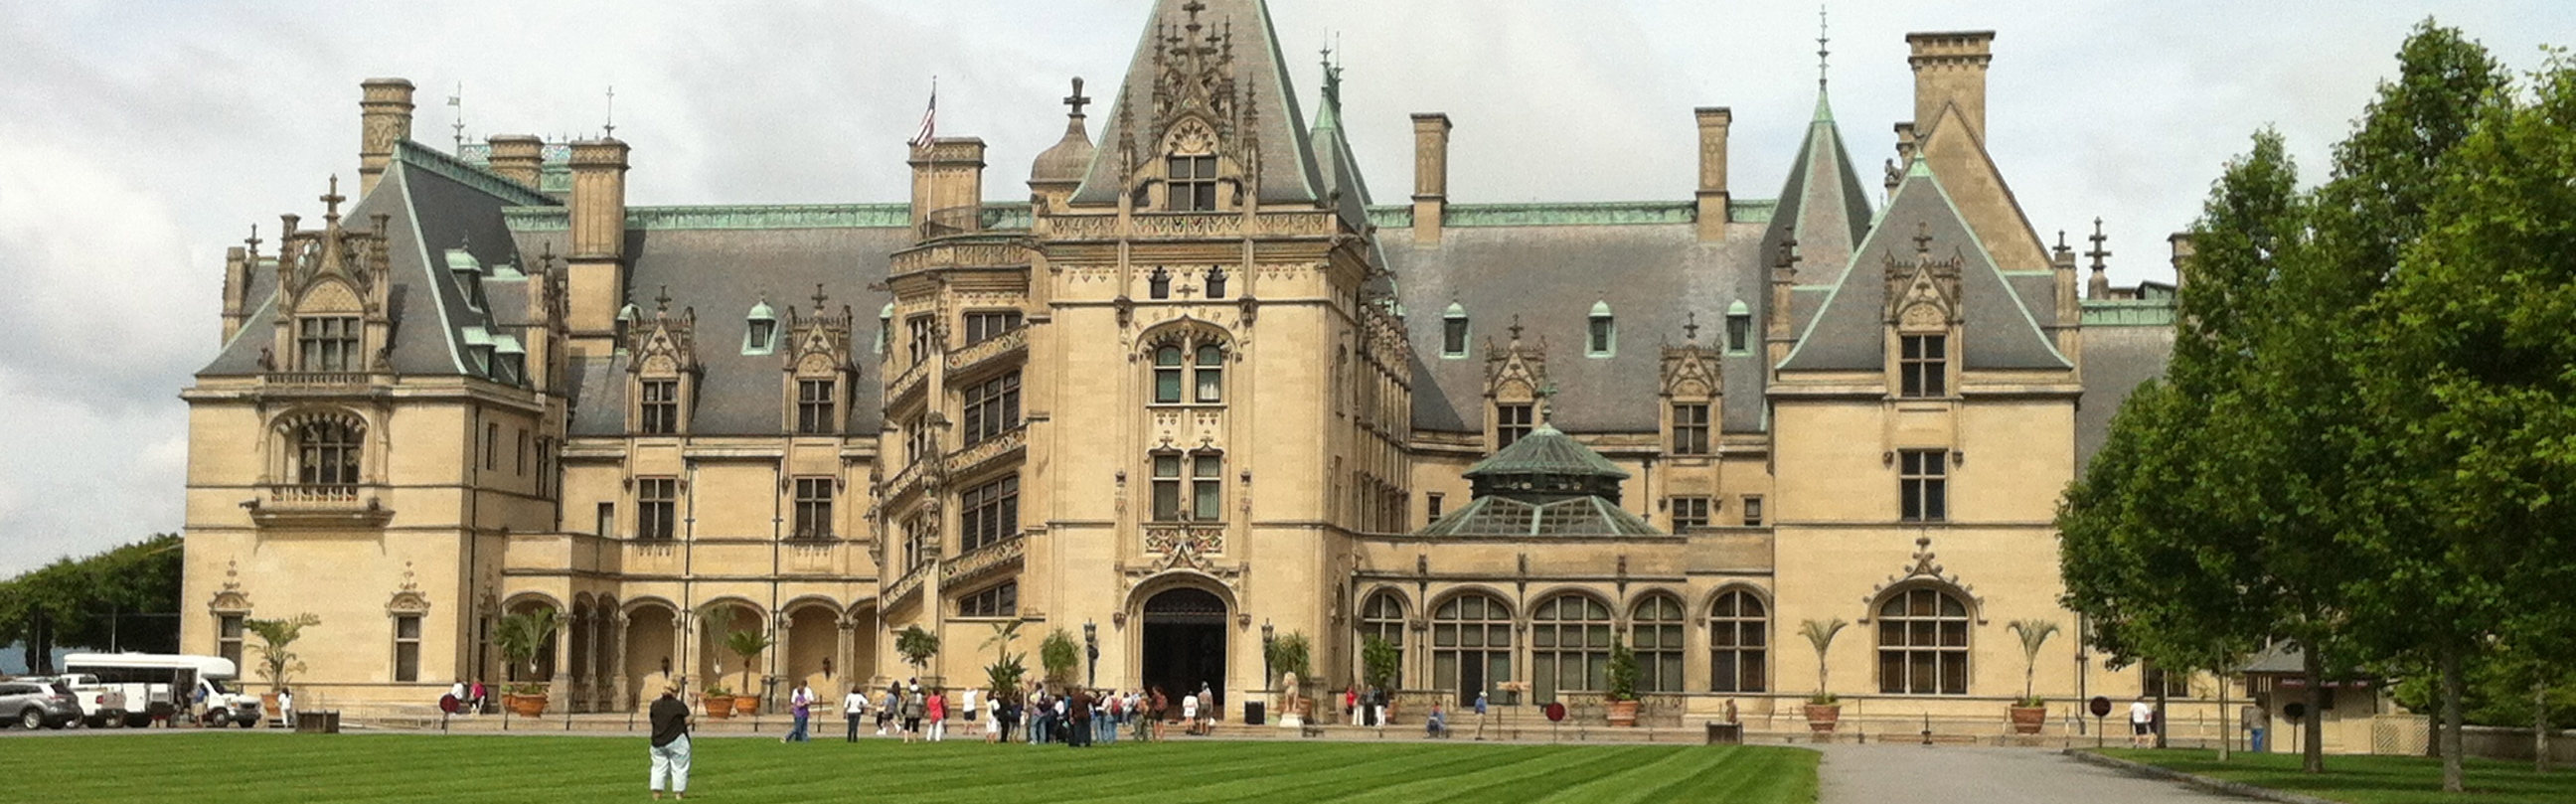 The biggest house in world biltmore asheville pictures for Picture of the biggest house in the world